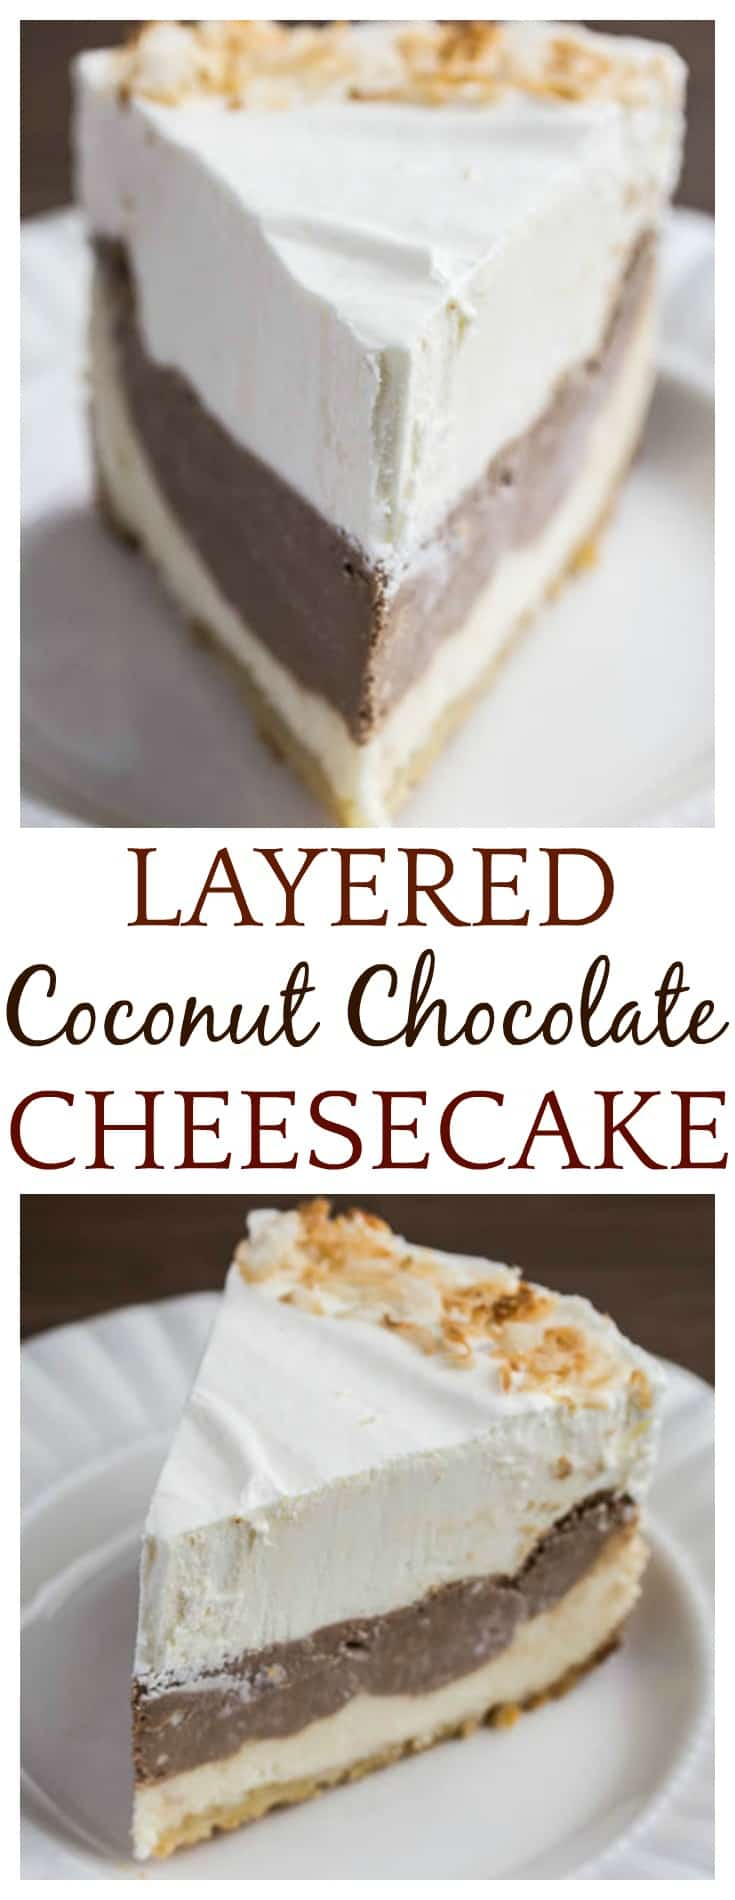 This Layered Coconut Chocolate Cheesecake is super indulgent, and easier to make than you might think! One layer is a really flavorful coconut cheesecake, while the other is a sweet, rich chocolate cheesecake! The final layer is sweet homemade whipped cream! This is a surprisingly easy recipe to make! | #cheesecake #coconutcheesecake #chocolatecheesecake #easyrecipes #DLB #dessert